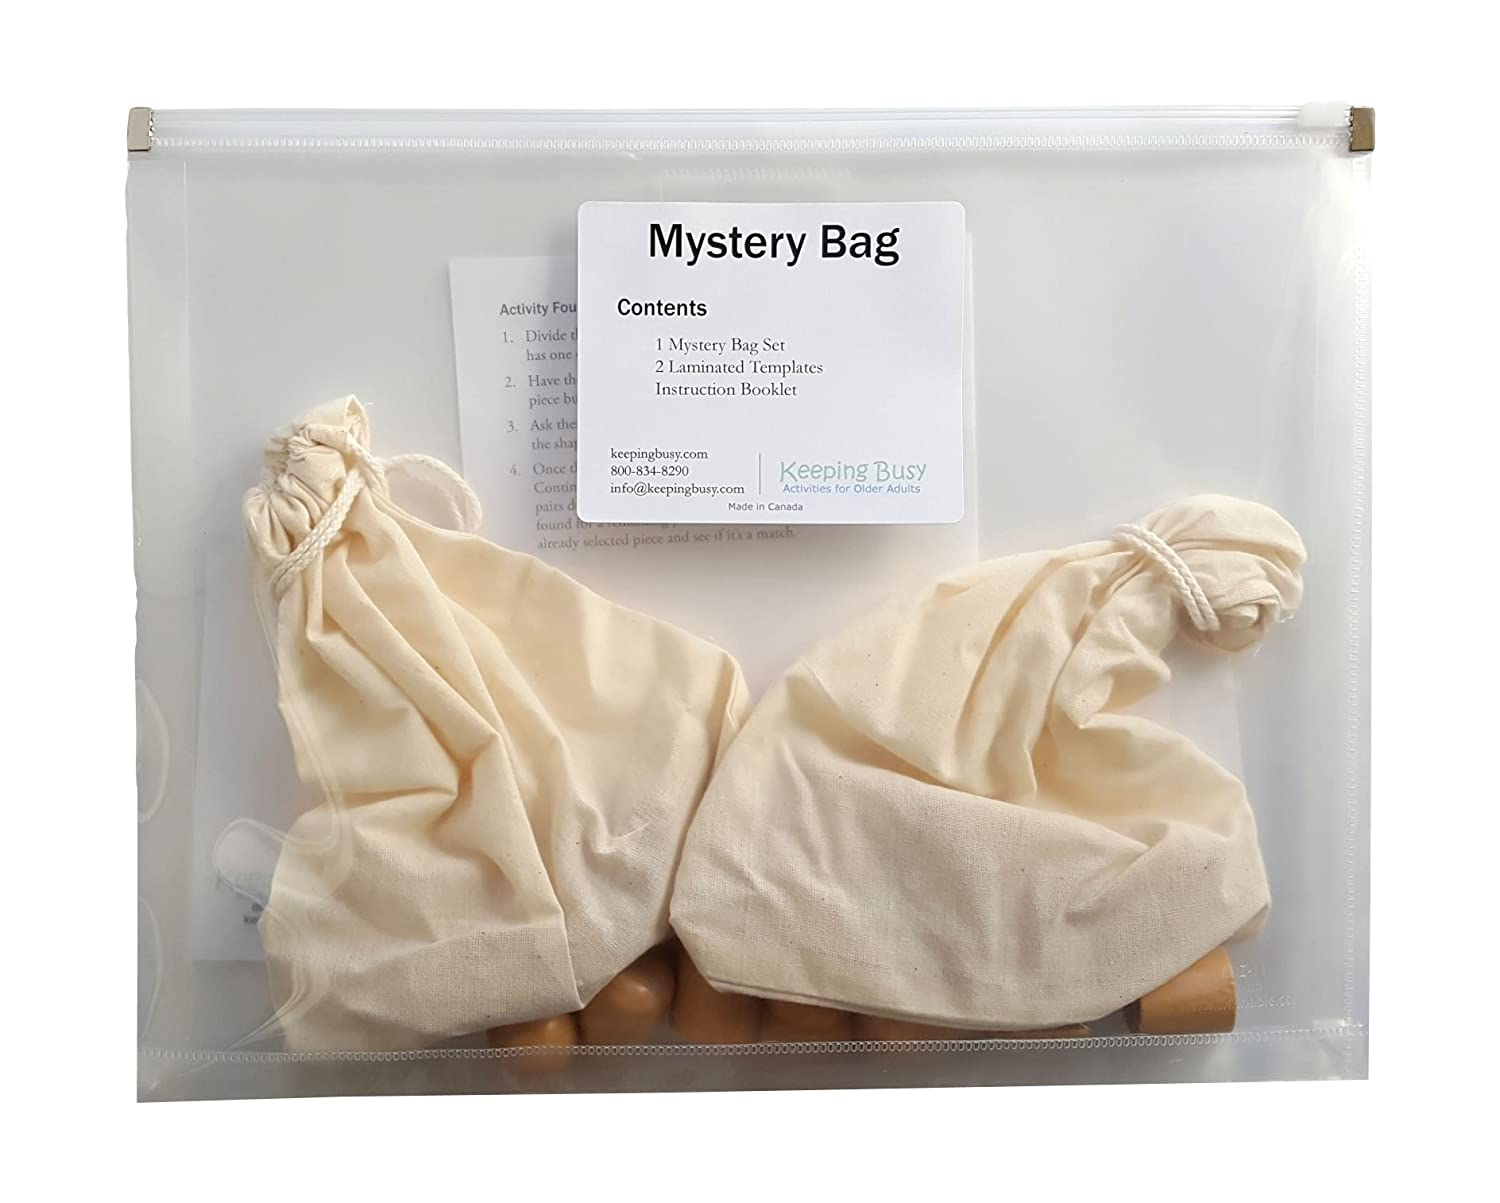 Games for Older Adults Keeping Busy Mystery Bag Dementia and Alzheimers Engaging Activities Puzzles